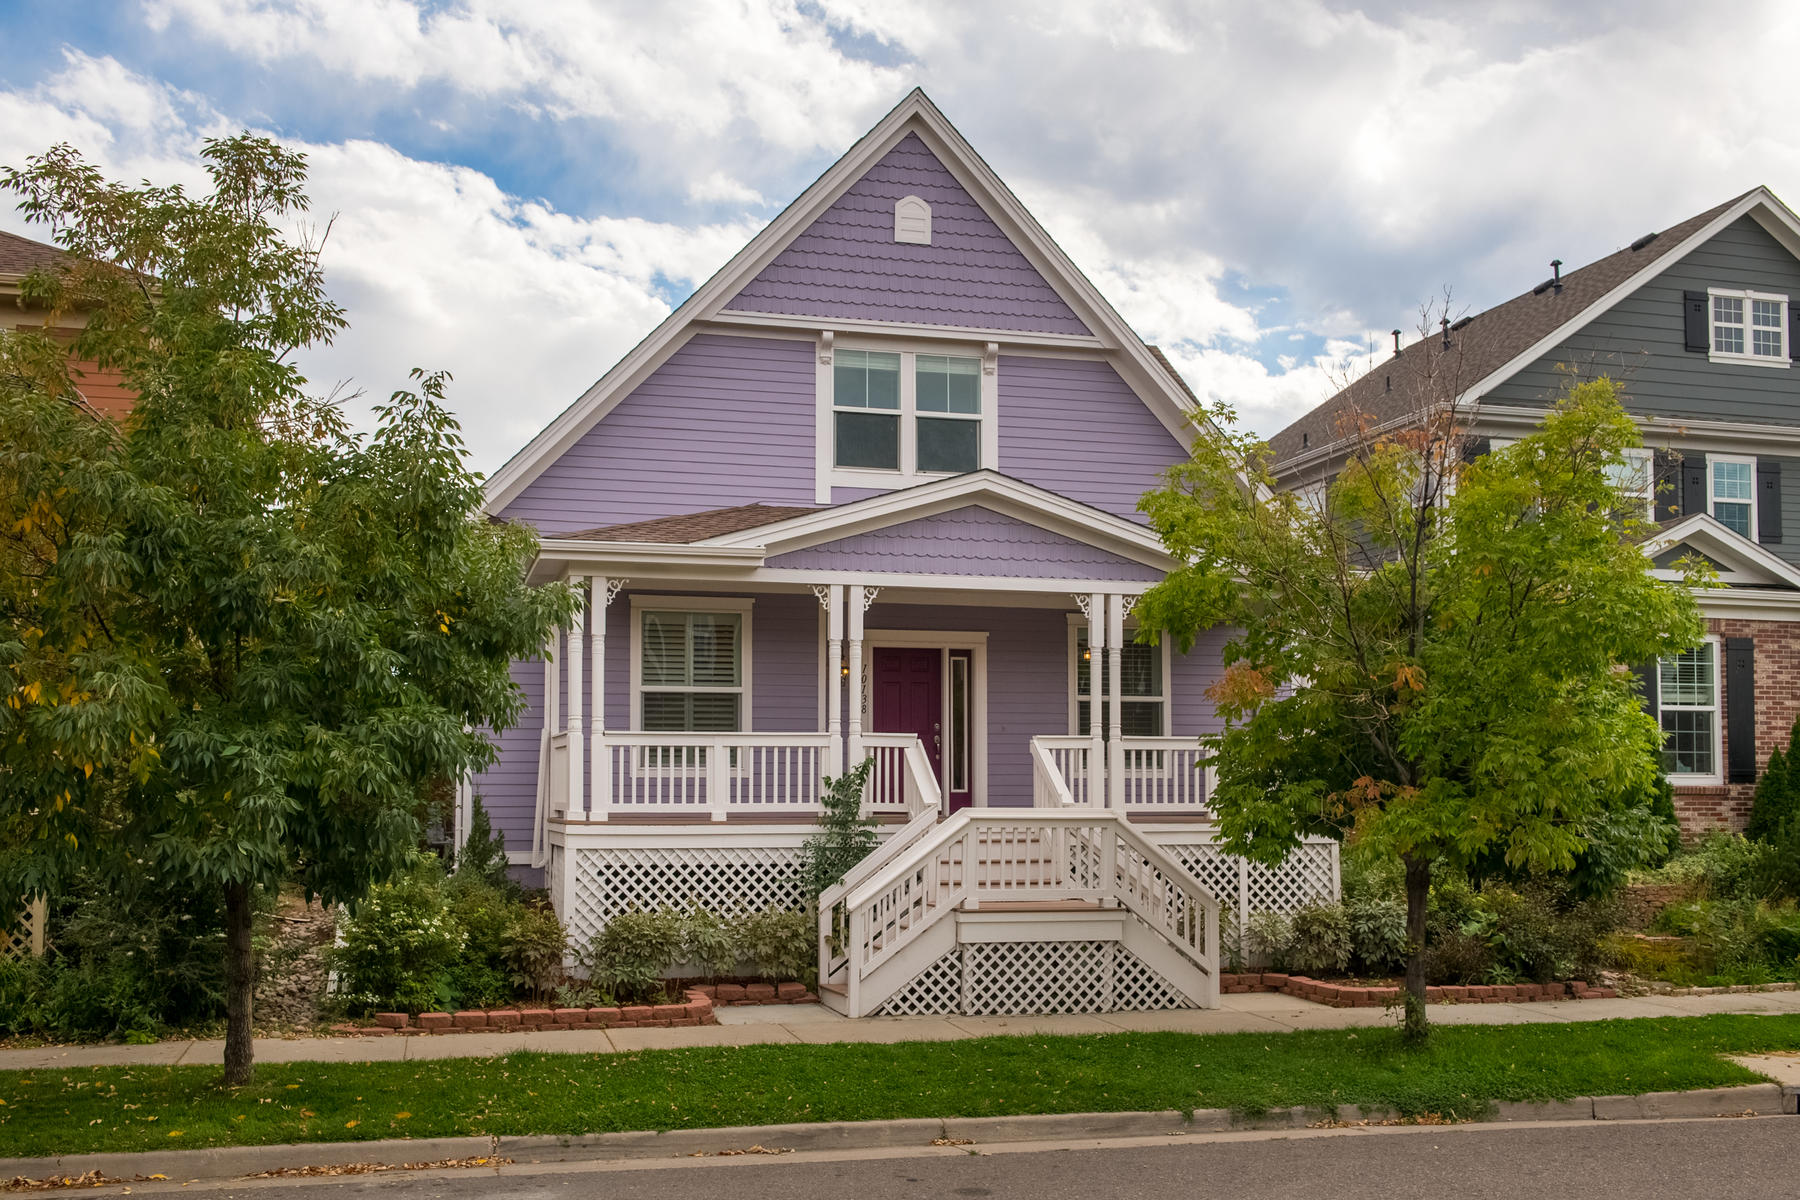 Property for Active at Modern Living with Victorian Charm in Stapleton 10138 East 28th Avenue Denver, Colorado 80238 United States